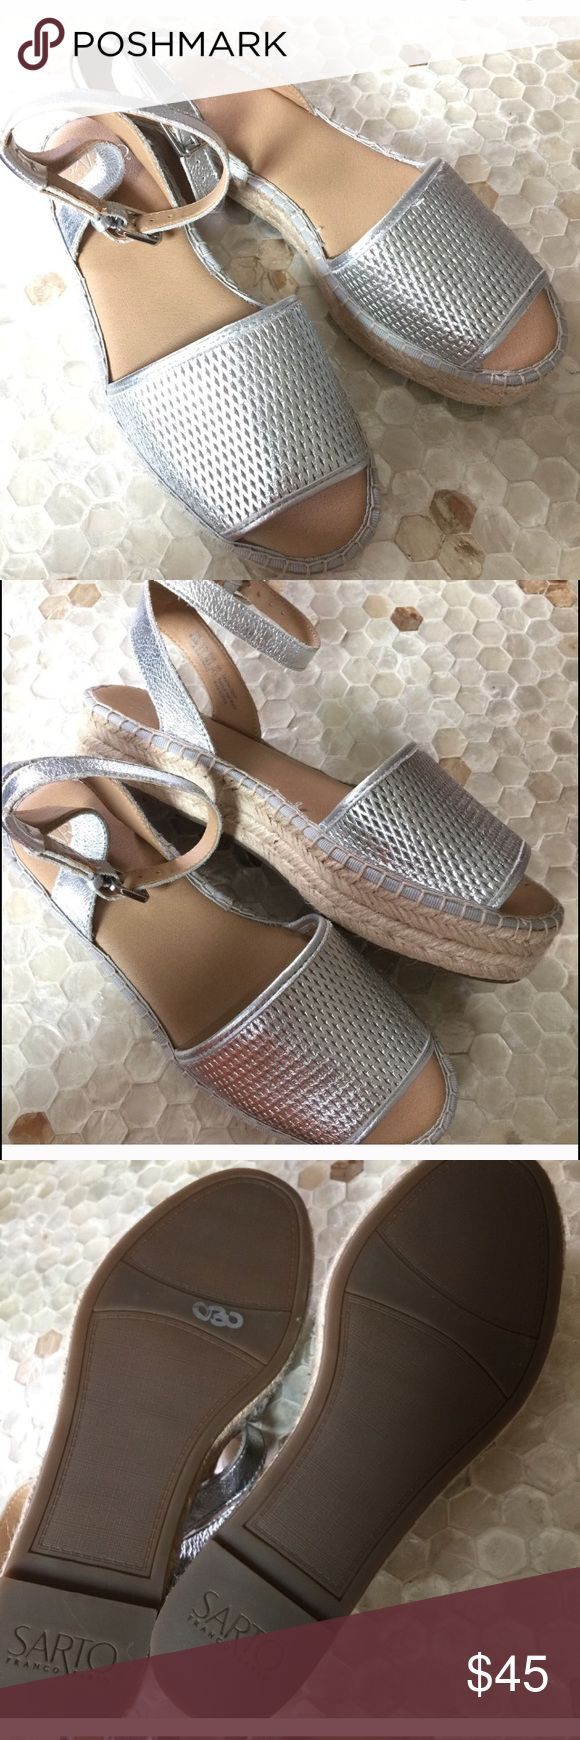 NWOT Franco Sarto silver espadrilles 7.5 Super cute. Go with everything during spring and summer. Have small wedge. Make me an offer Franco Sarto Shoes Espadrilles